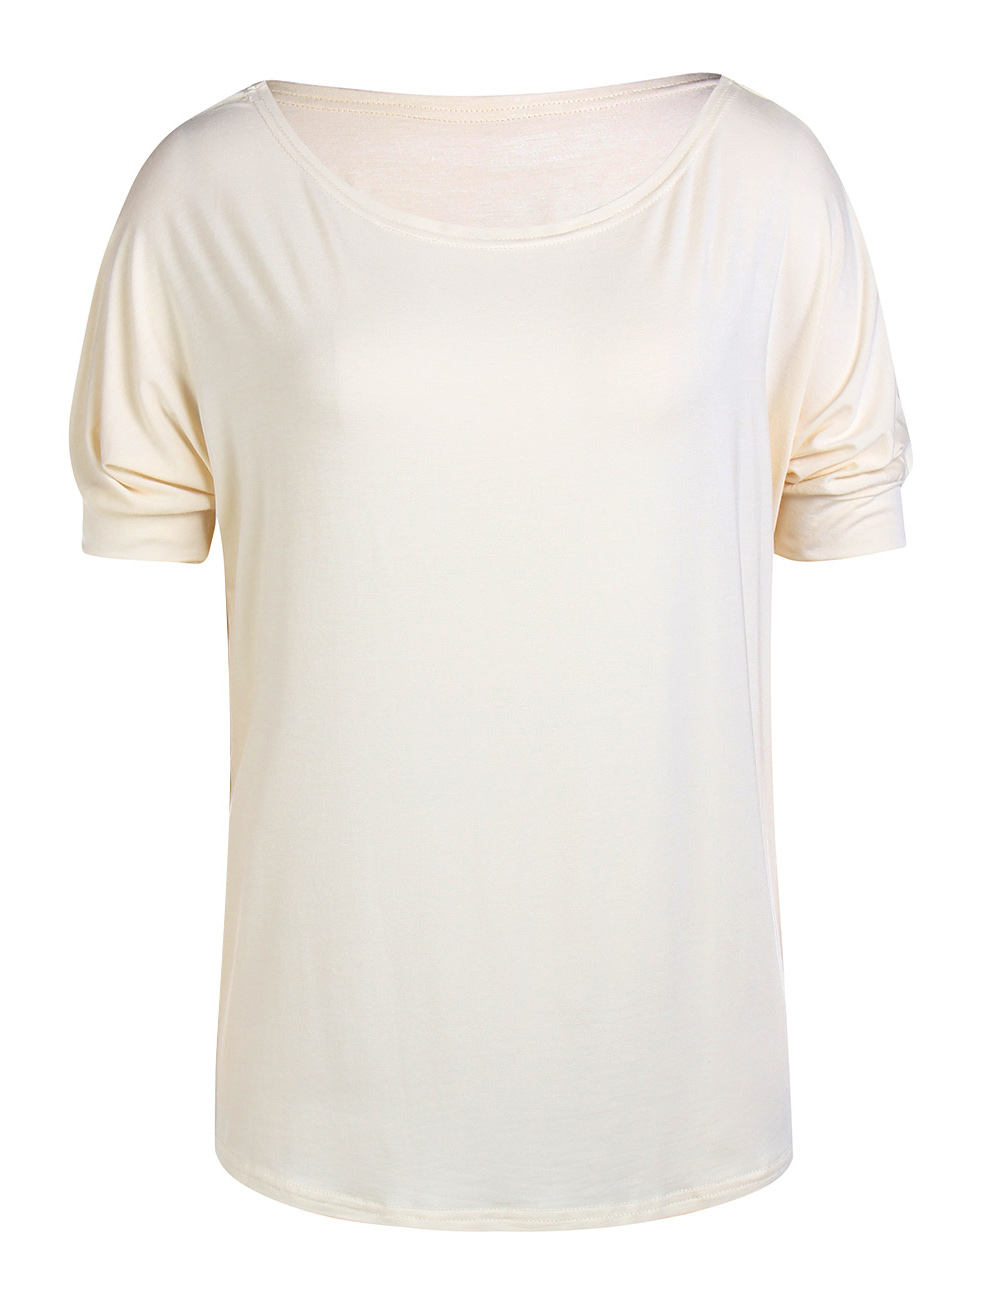 //cdn.affectcloud.com/hexinfashion/upload/imgs/Women_Clothing/Short_Sleeve/G180060BE01/G180060BE01-201911055dc13f5228f15.jpg